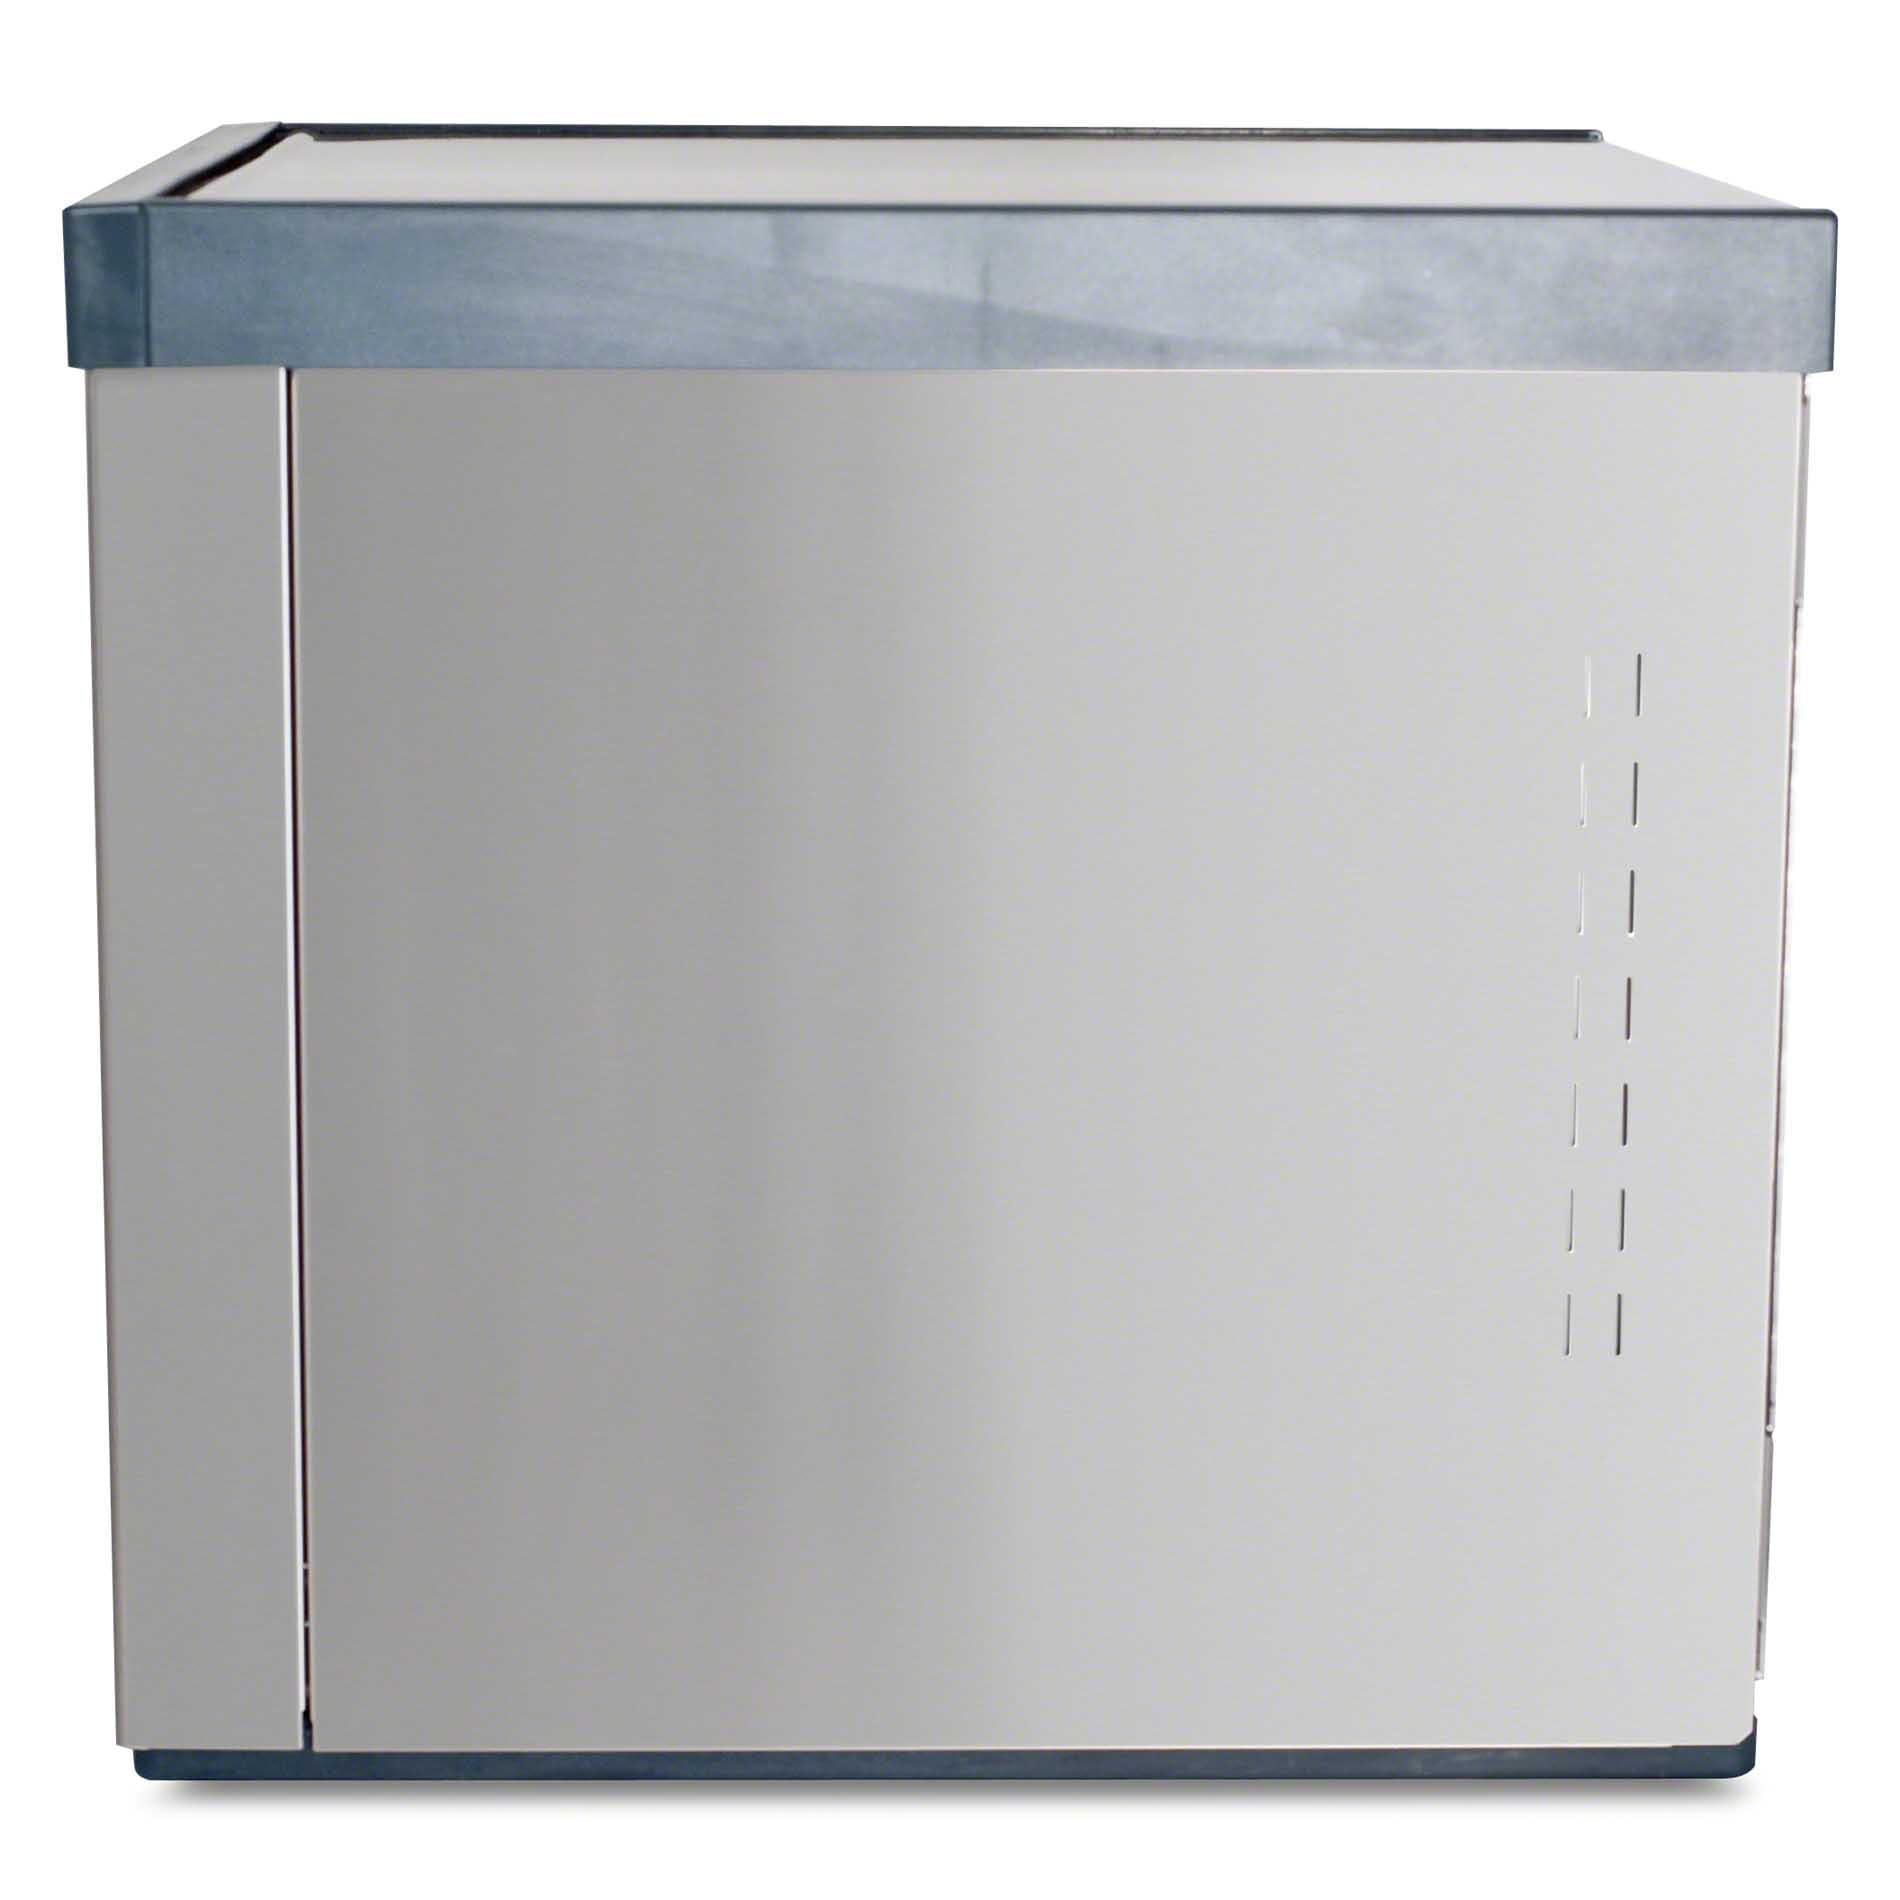 Scotsman - C0322MA-1A 356 lb Full Size Cube Ice Machine - Prodigy Series - sold by Food Service Warehouse